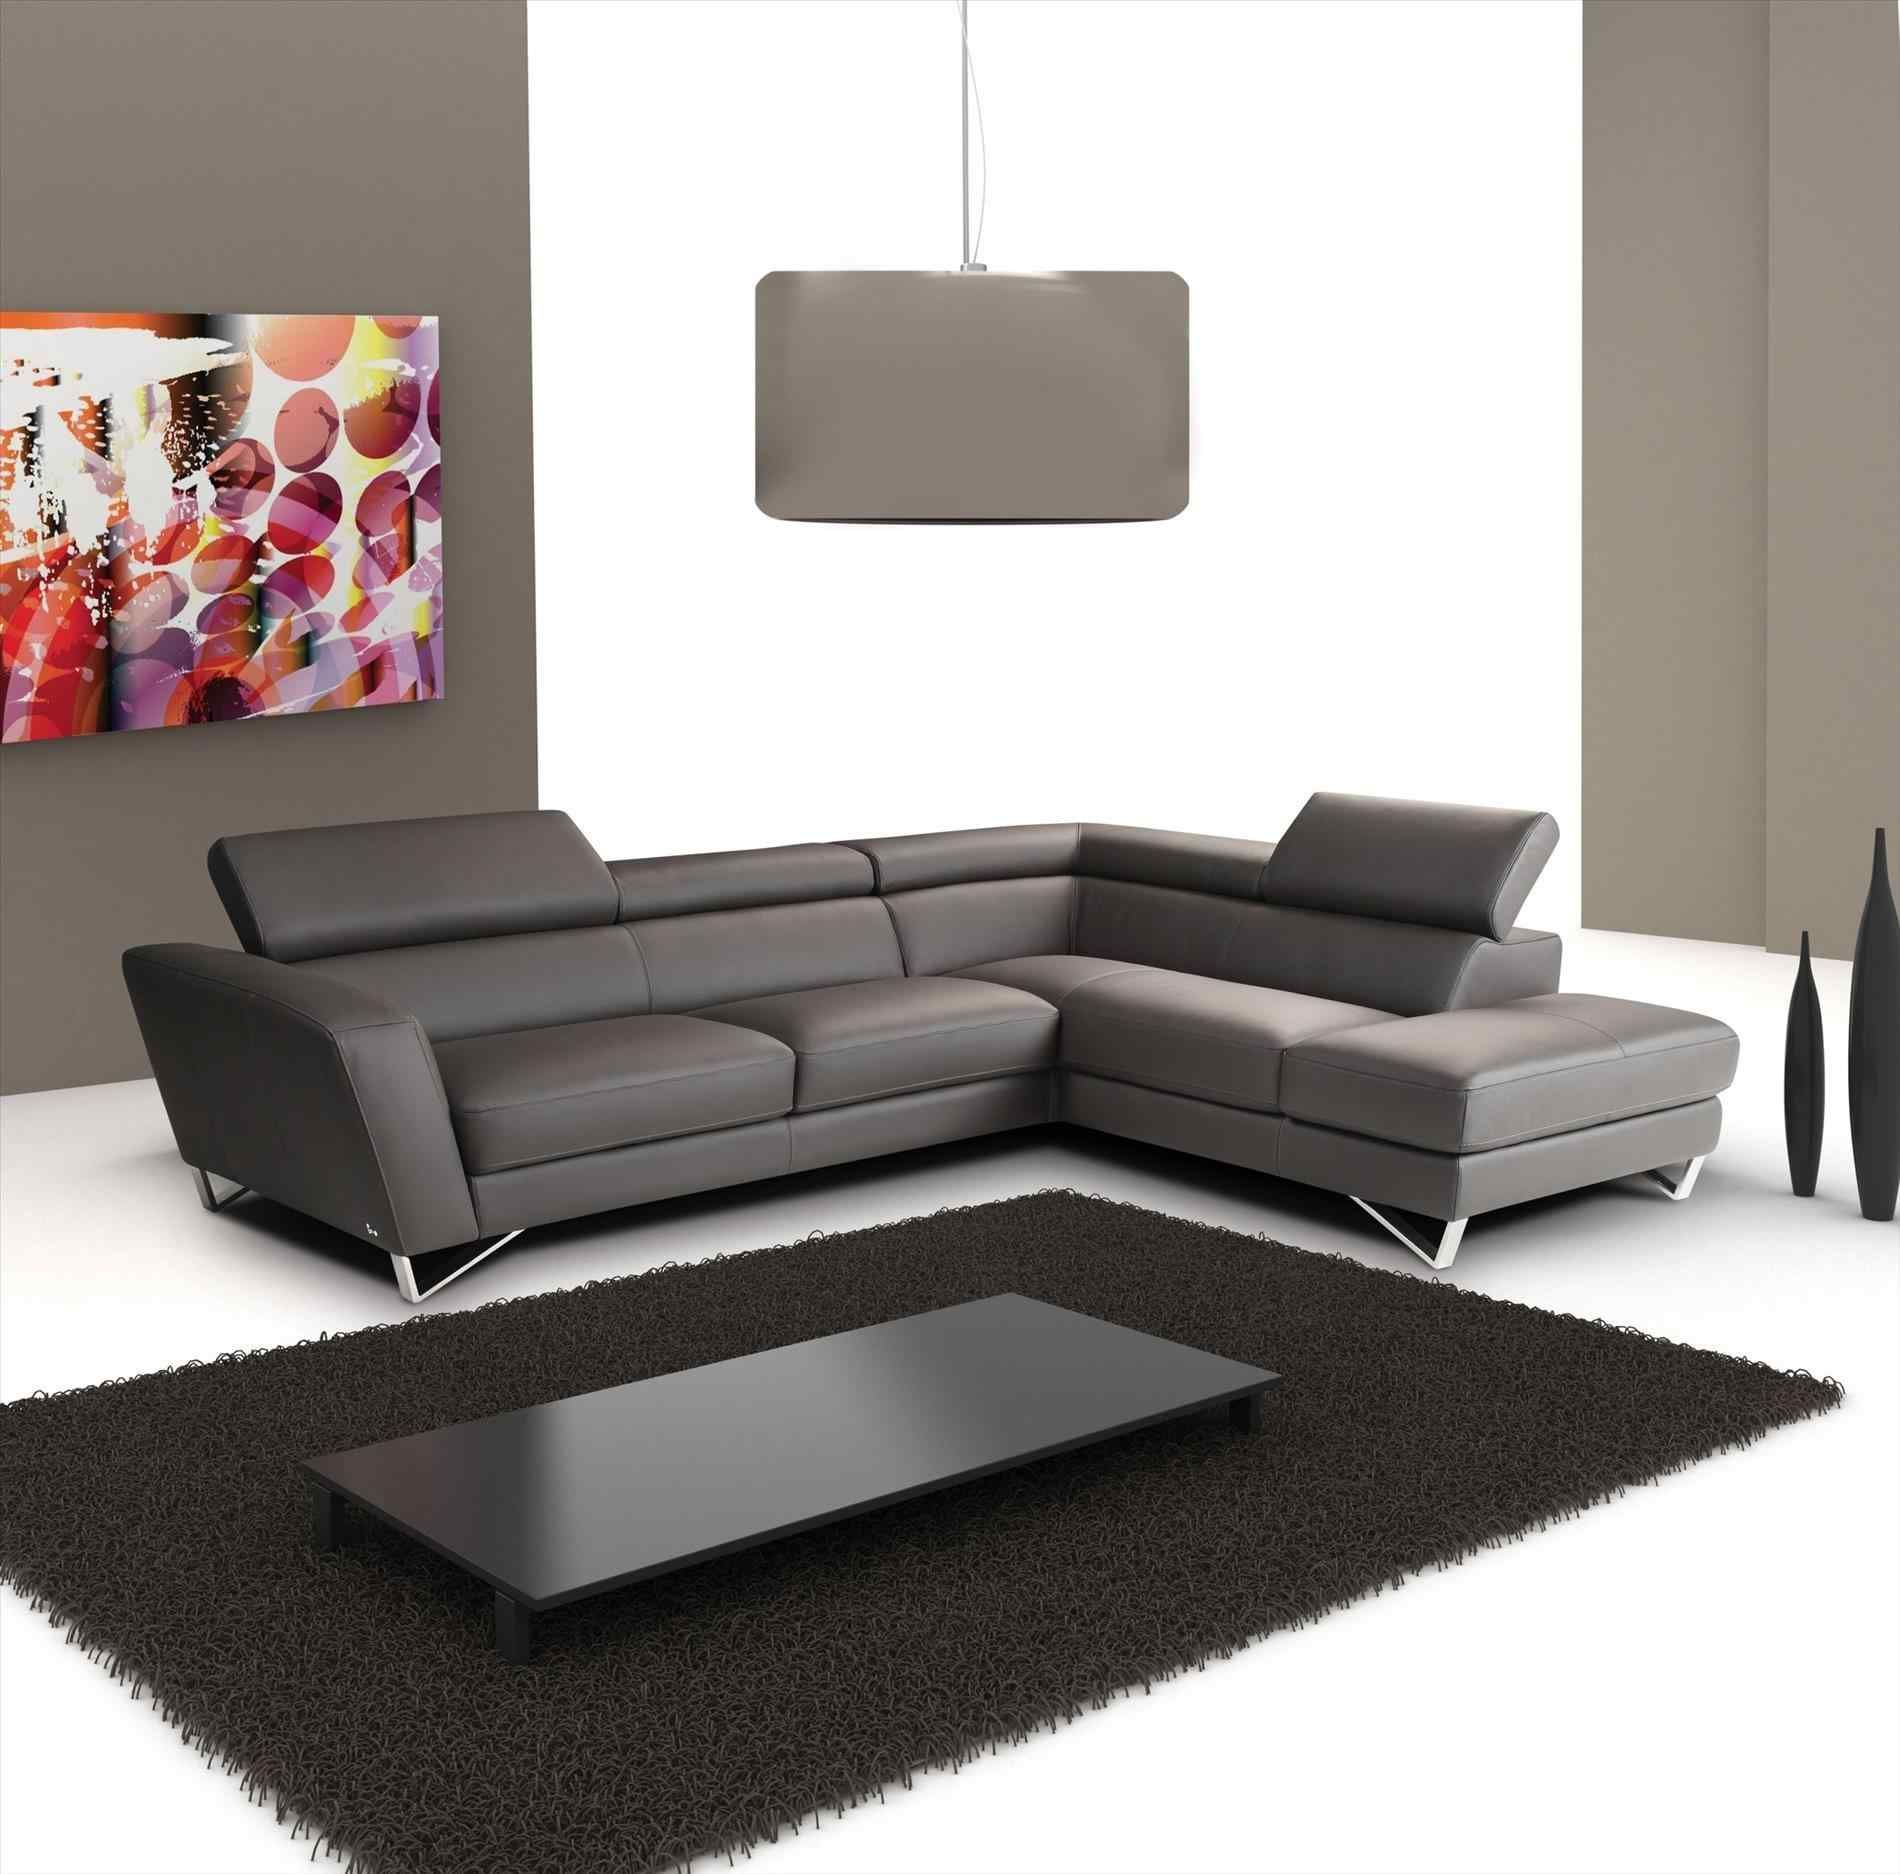 Sears Couches Low Cost Sectional Sofas Sears Cozy Gray Sofa For